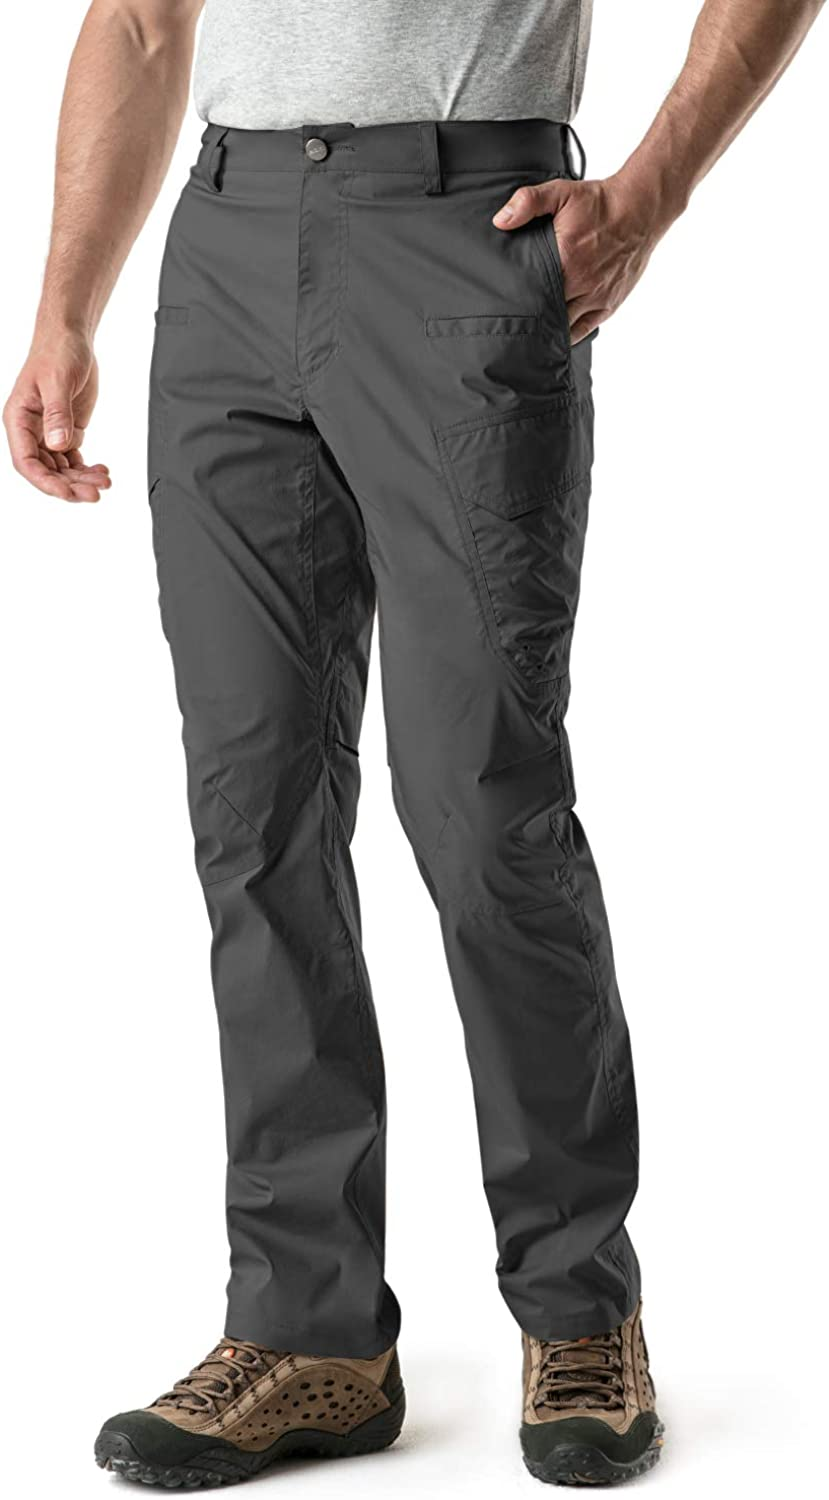 CQR Men's Hiking Pants, Water Repellent Outdoor Pants, Lightweight Stretch Cargo/Straight Work Pants, UPF 50+ Outdoor Apparel : Sports & Outdoors